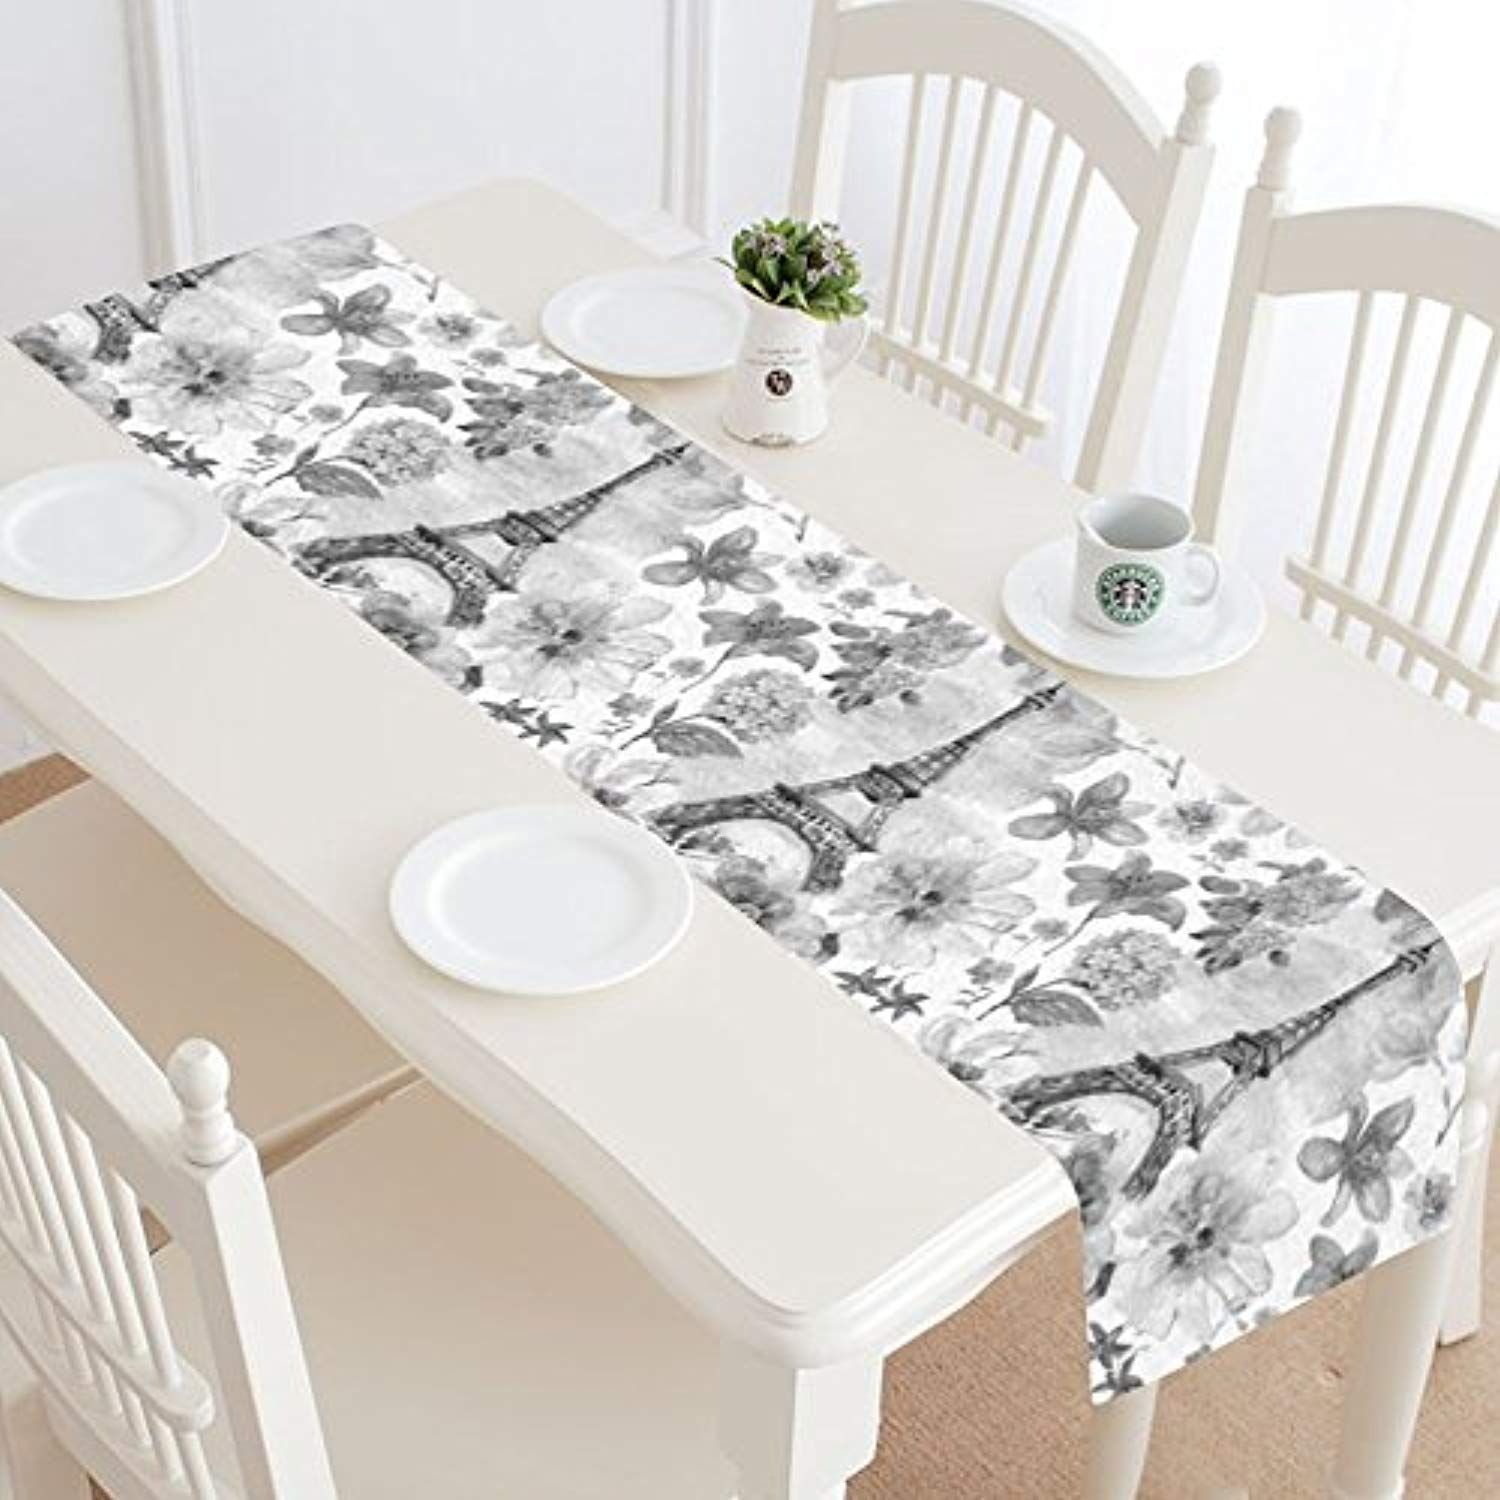 Best Of Banquet Table Runners